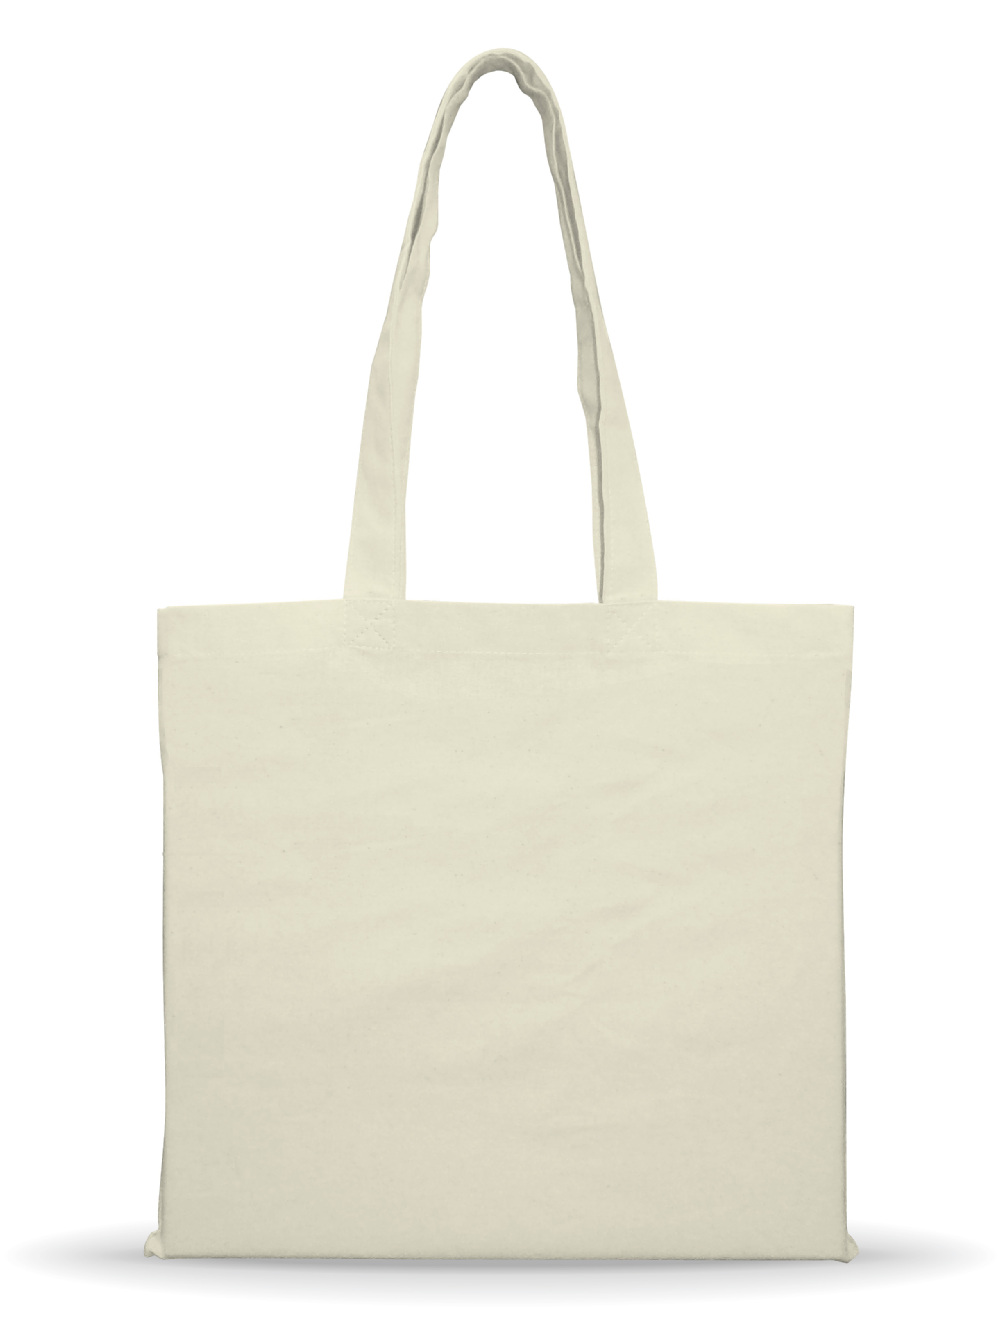 popular wholesale cotton canvas tote bag buy cotton